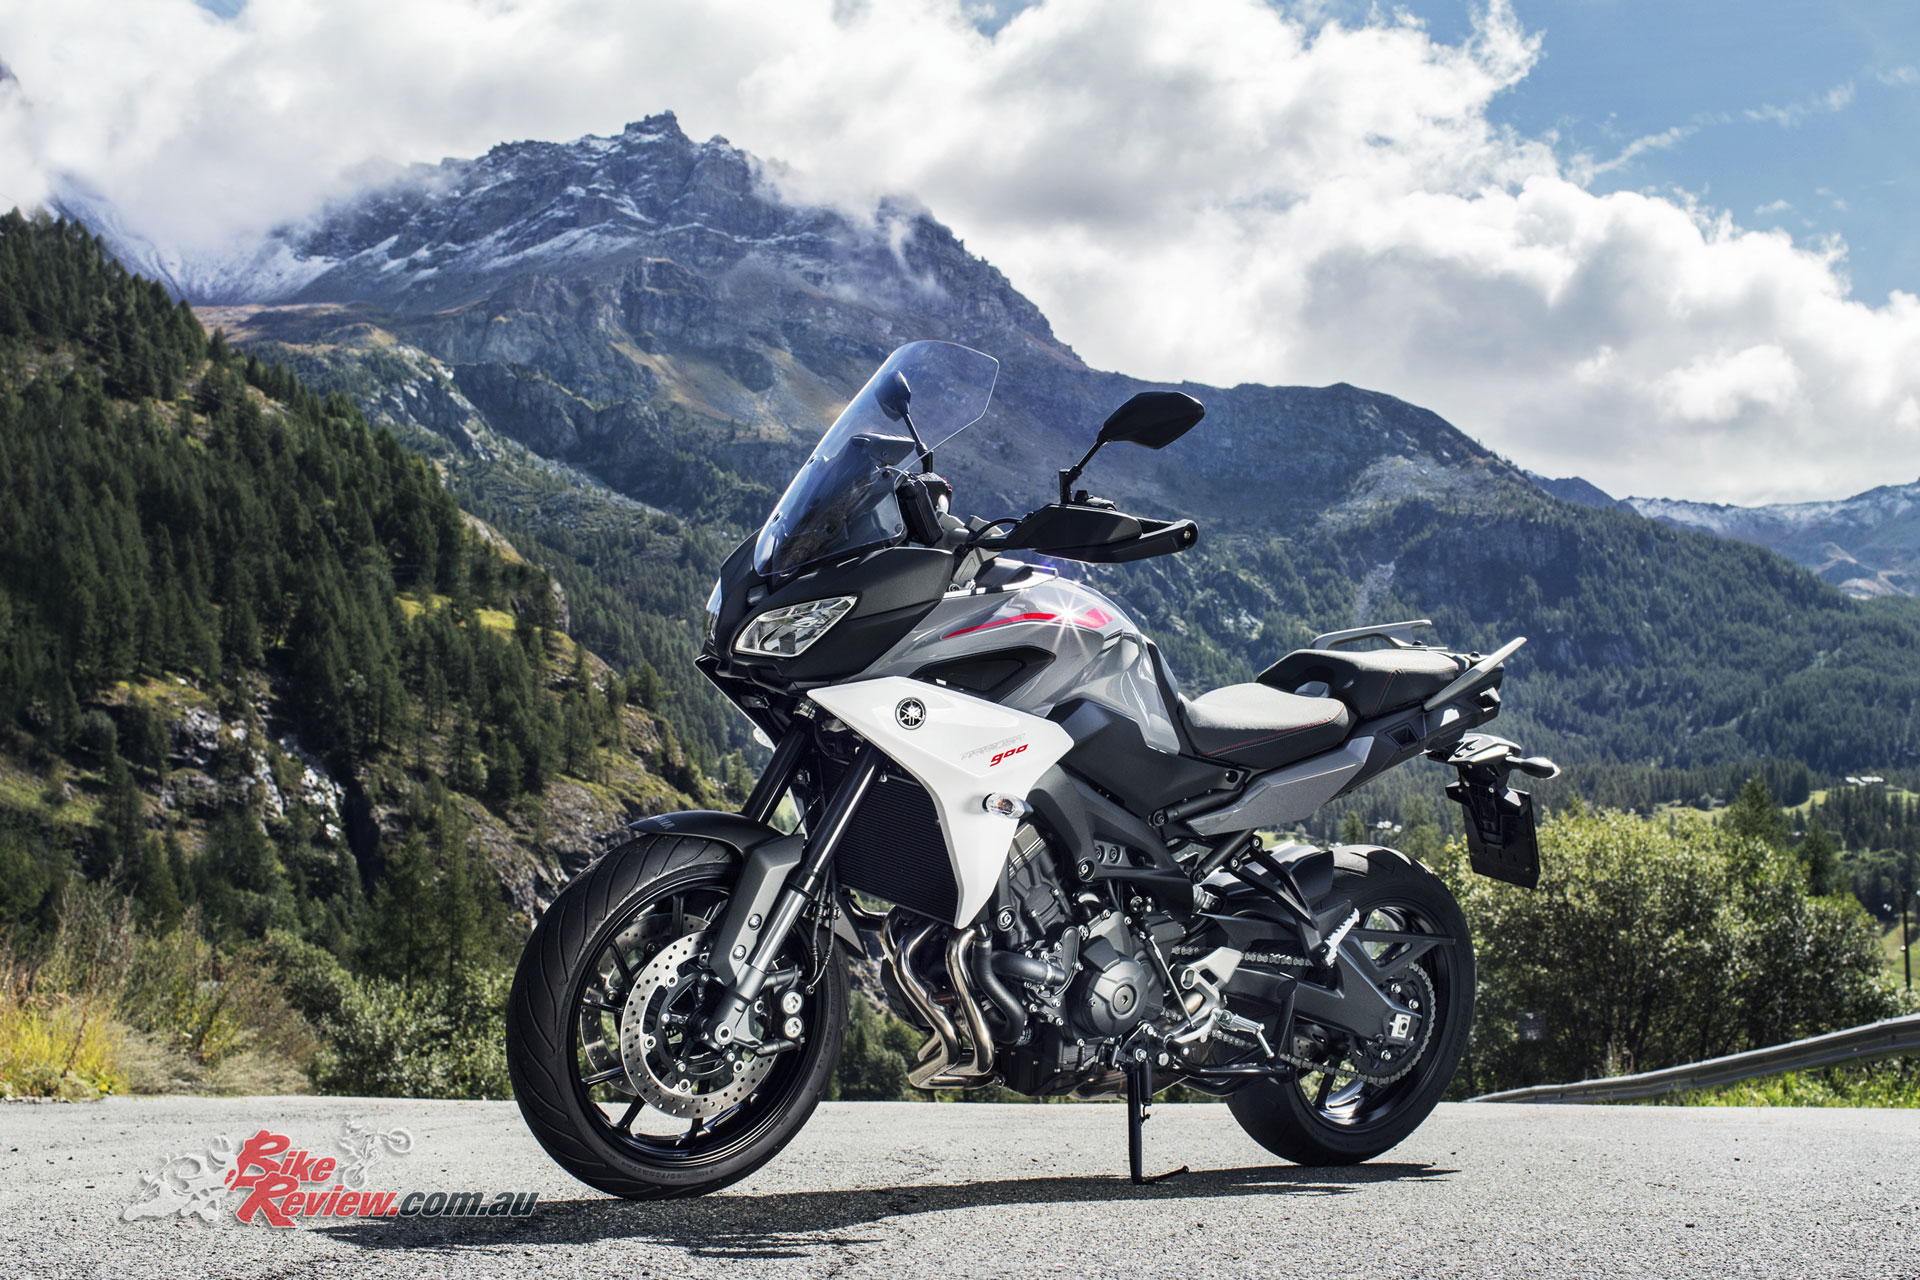 yamaha unveil new tracer gt mt 09 sp at eicma bike review. Black Bedroom Furniture Sets. Home Design Ideas